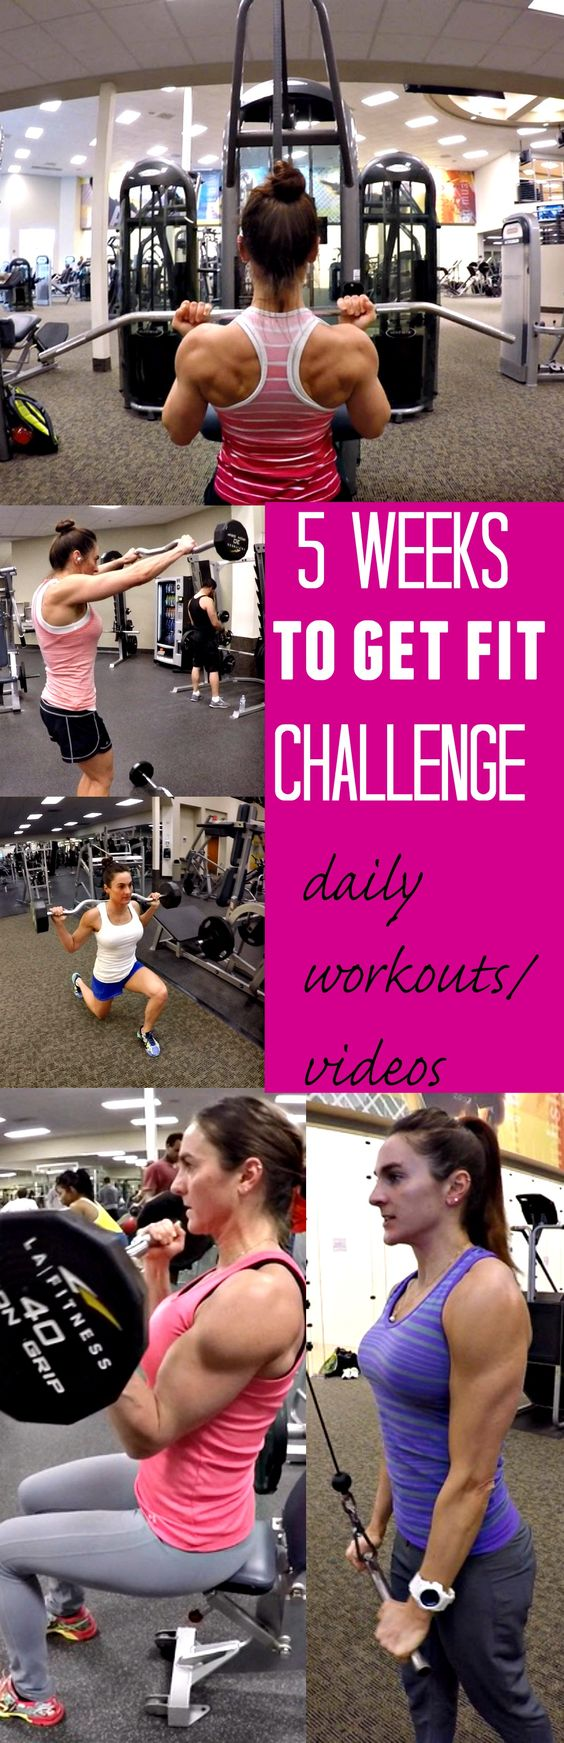 Take this 5 Weeks To Get Fit Challenge and see what you can do!